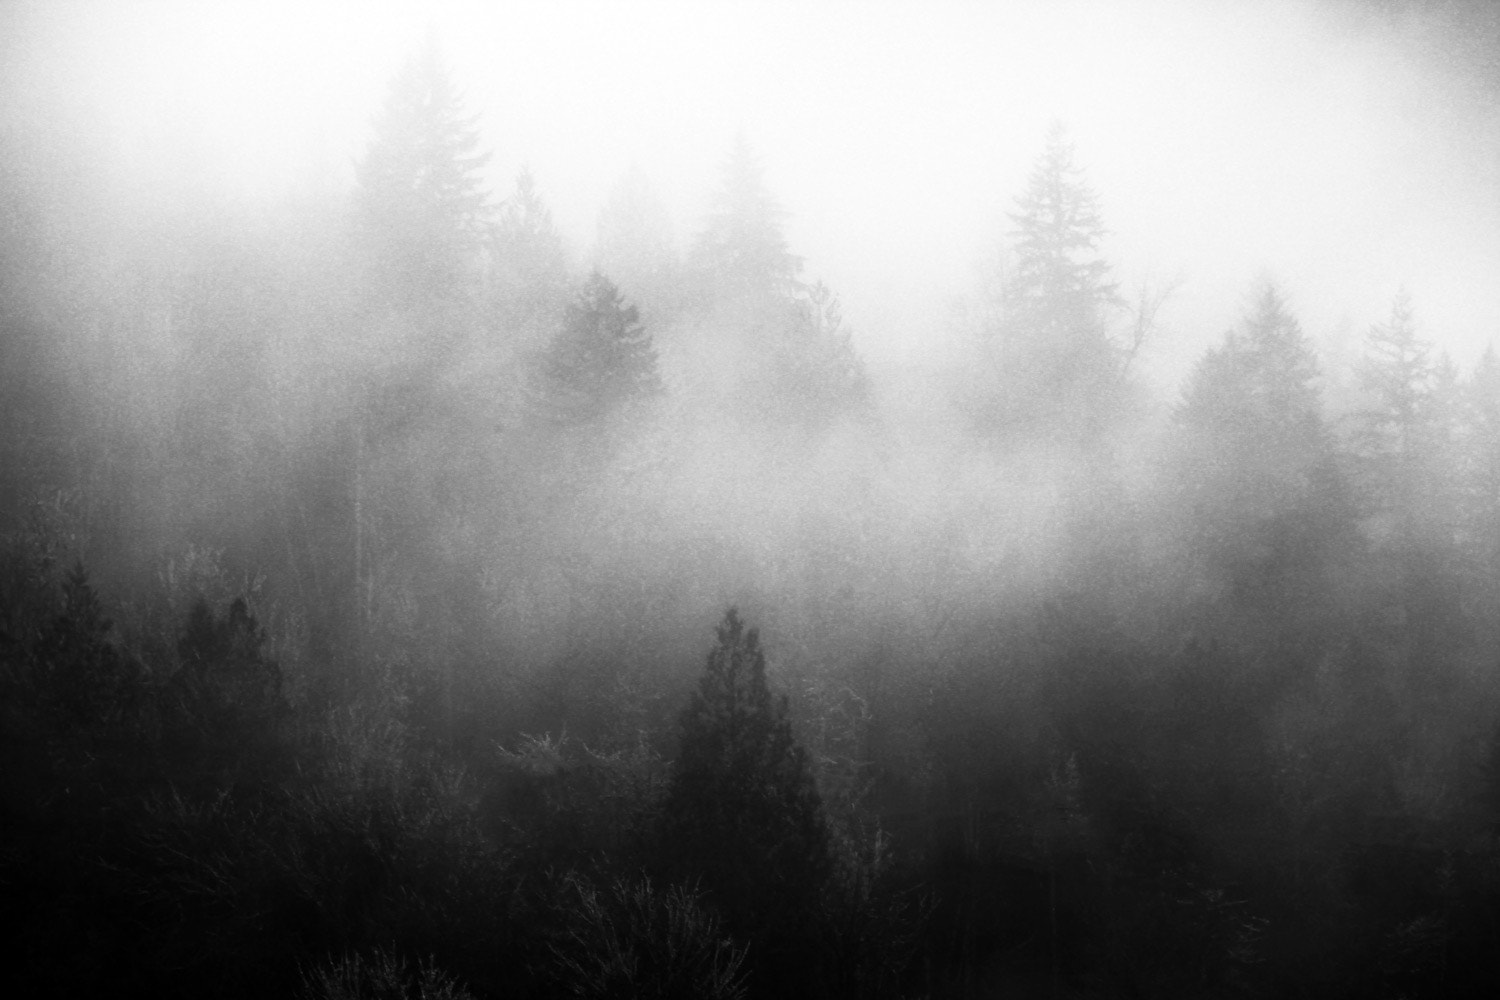 Photograph Mist of the Forest by Michael Rollins on 500px